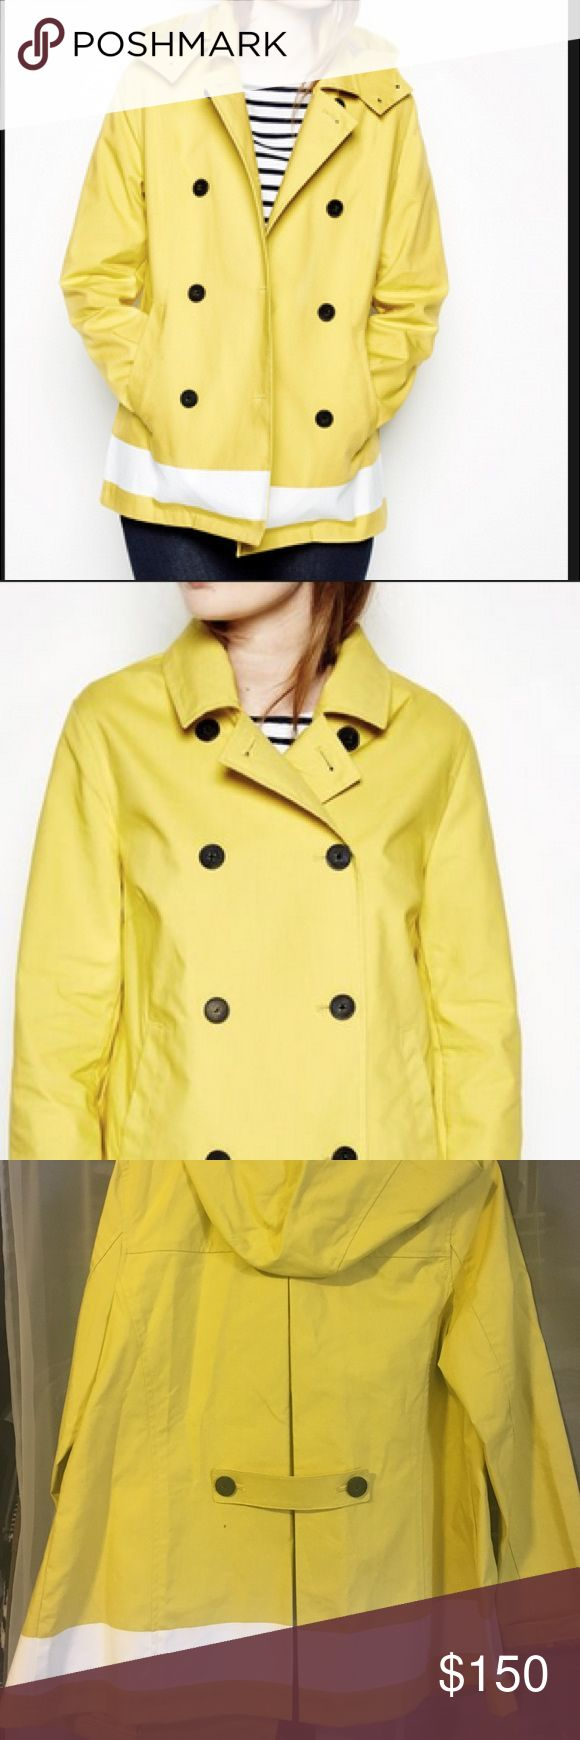 JACK WILLS yellow raincoat Never worn yellow raincoat with stripe detail and buttons; pleated back, removable hood and pockets Jack Wills Jackets & Coats Pea Coats